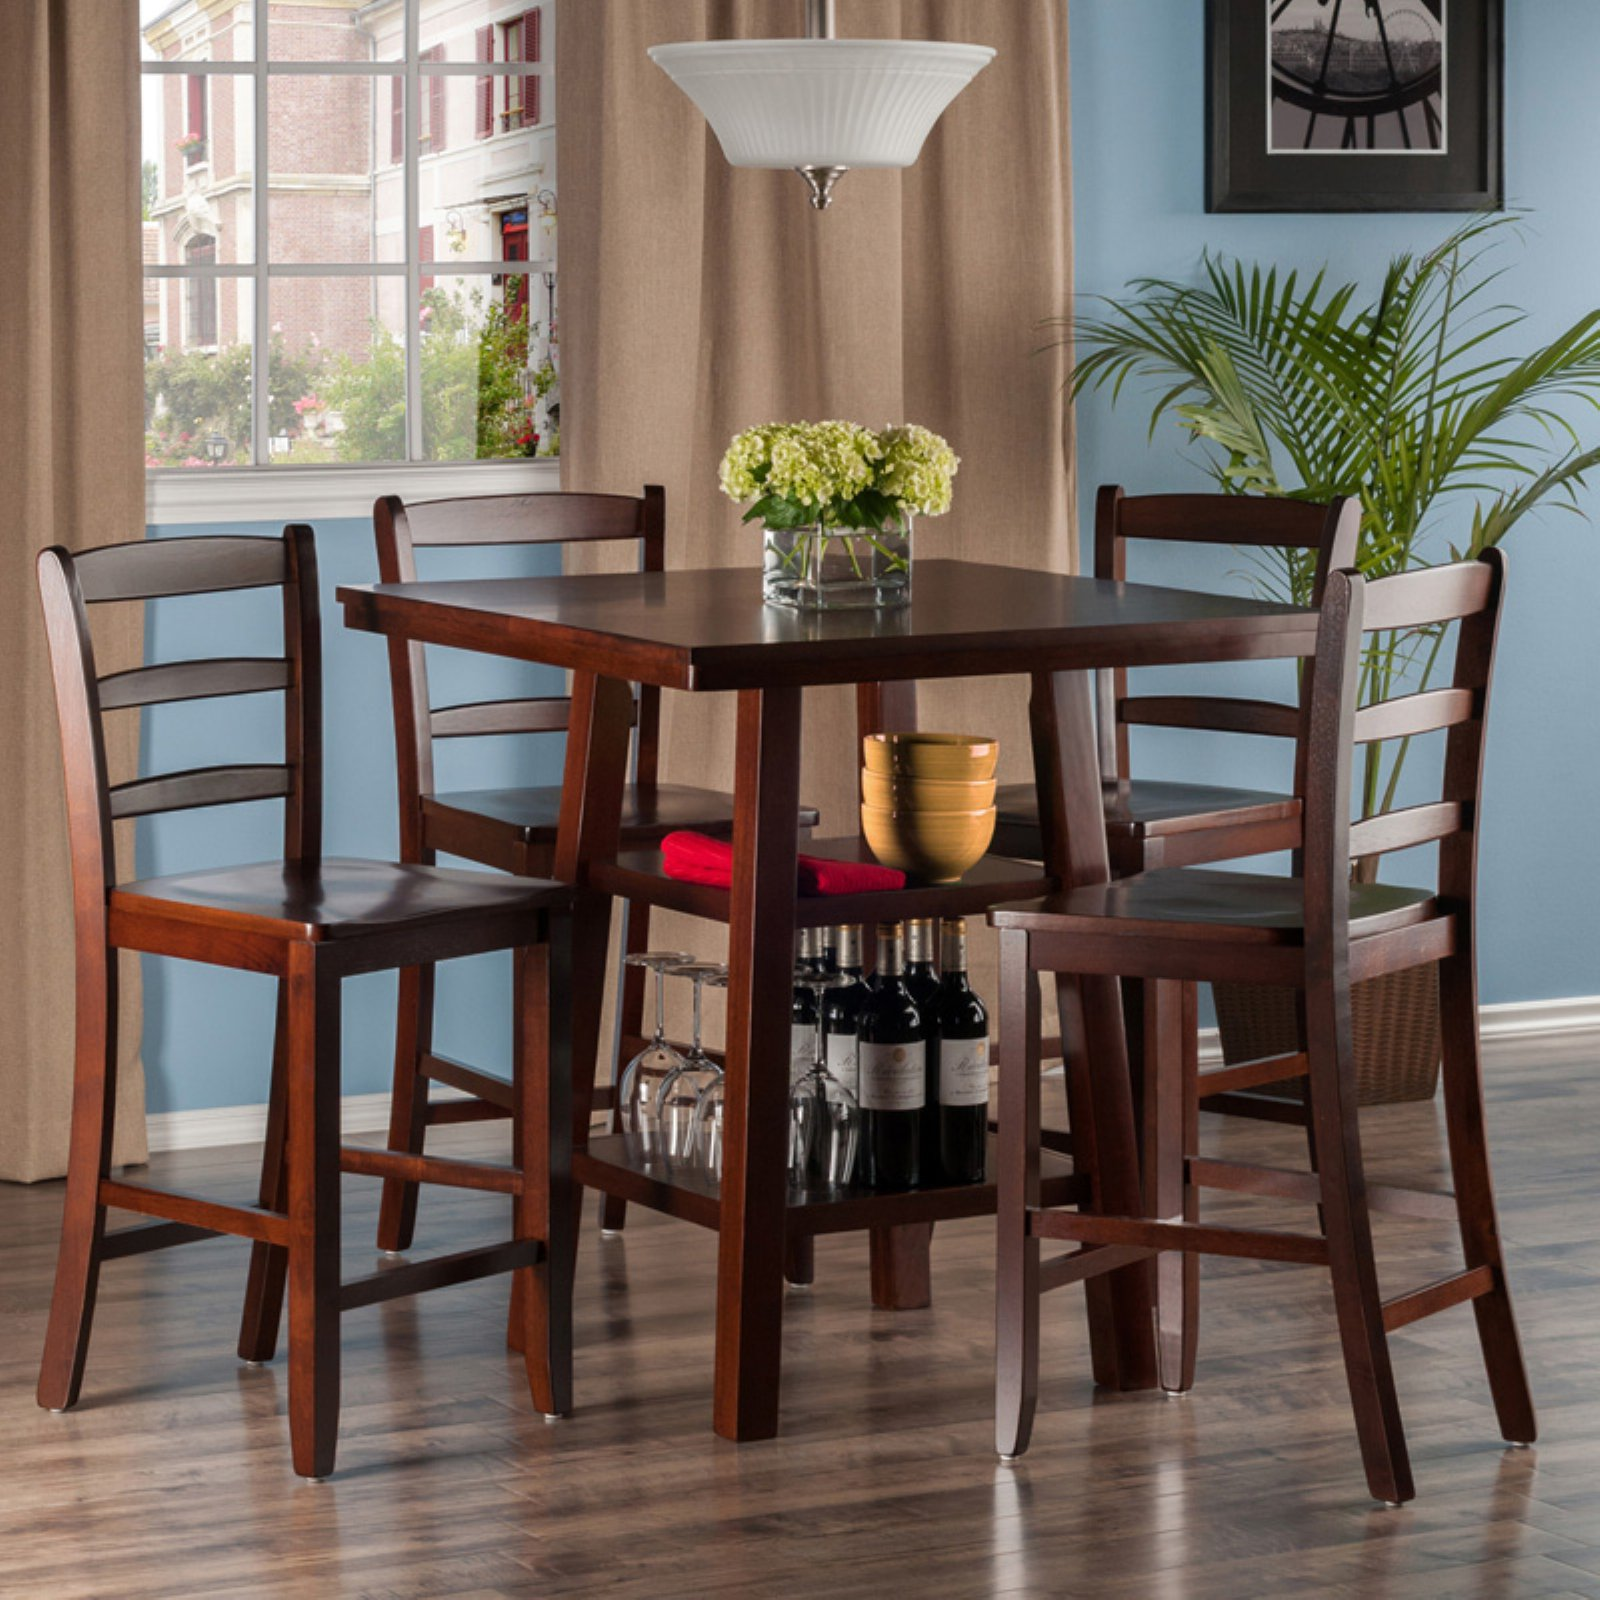 Orlando 5-Pc Set High Table, 2 Shelves w/ 4 Ladder Back Stools